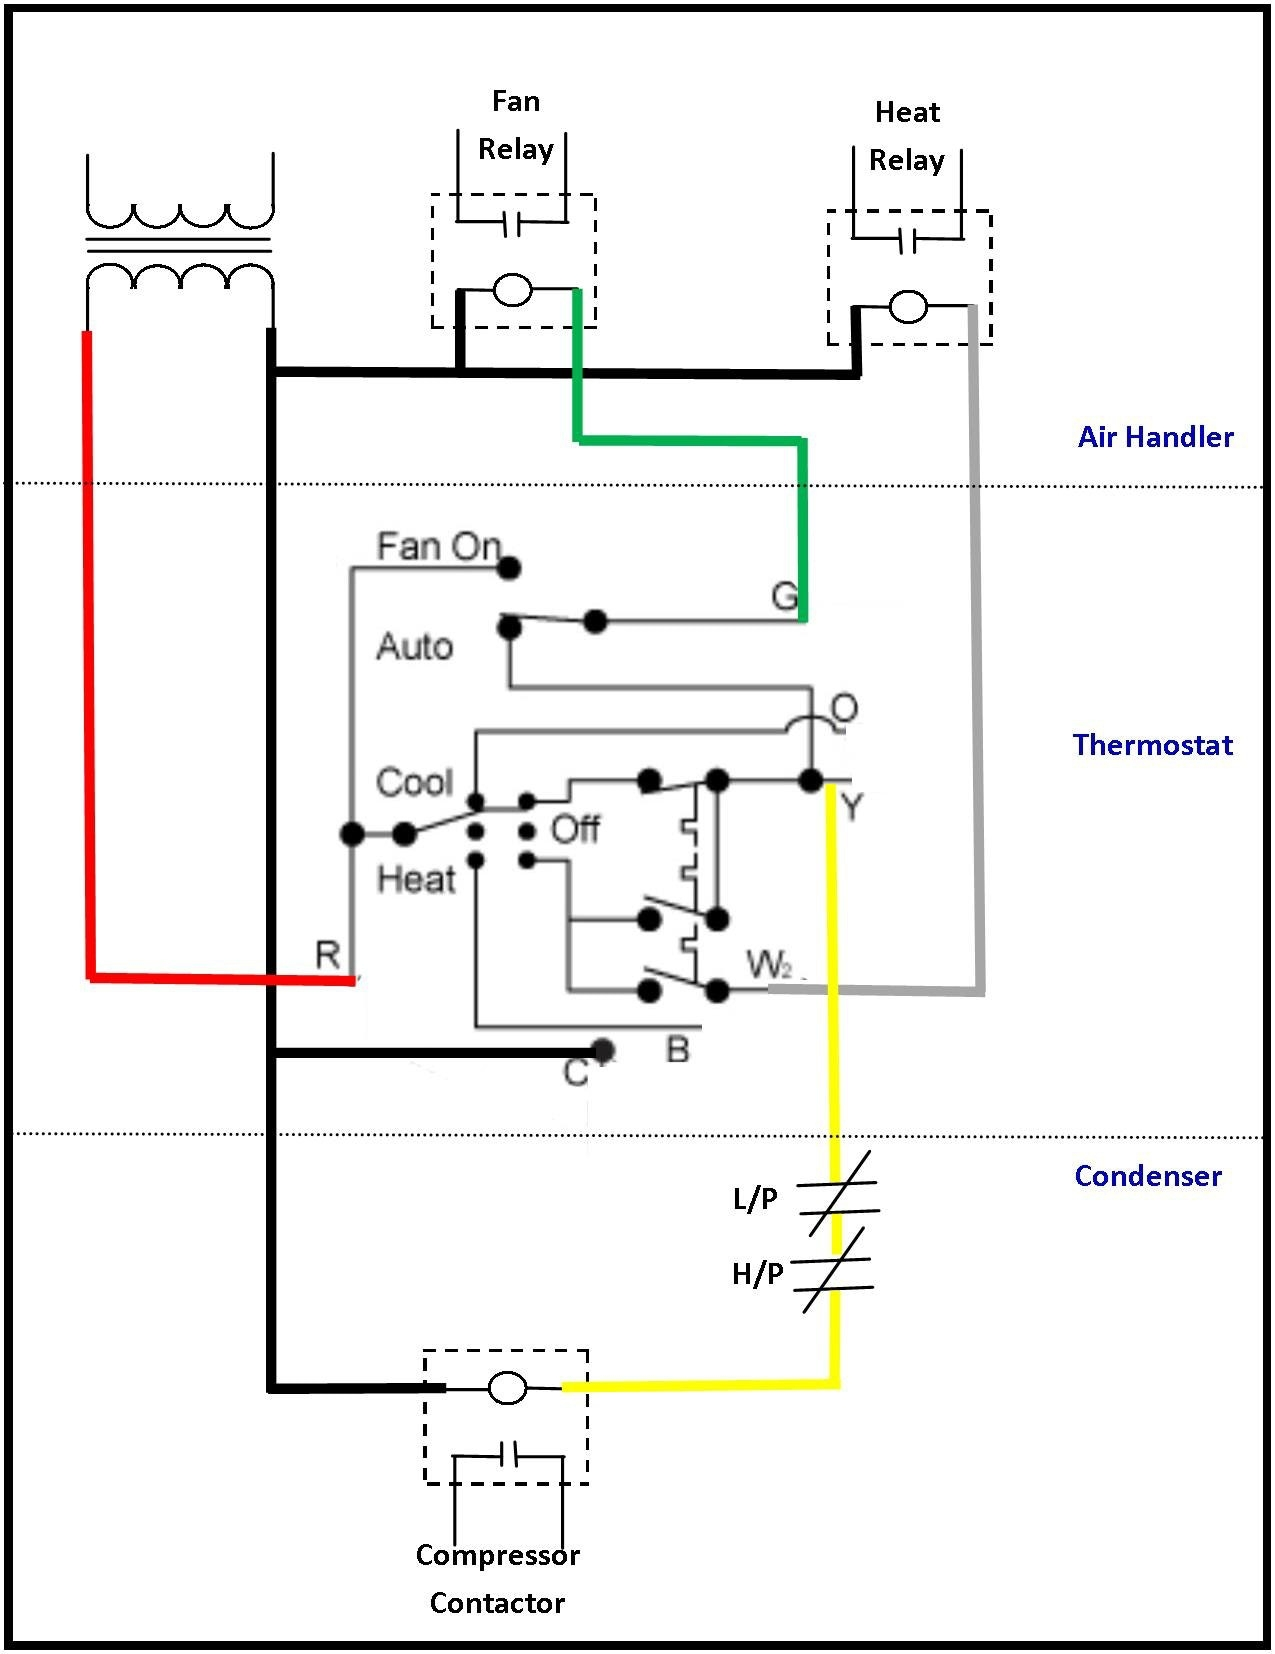 24 volt transformer wiring diagram Download-Furnace Transformer Wiring Diagram Download Five Wire Thermostat Wiring Diagram For Furnace 7 d 13-o